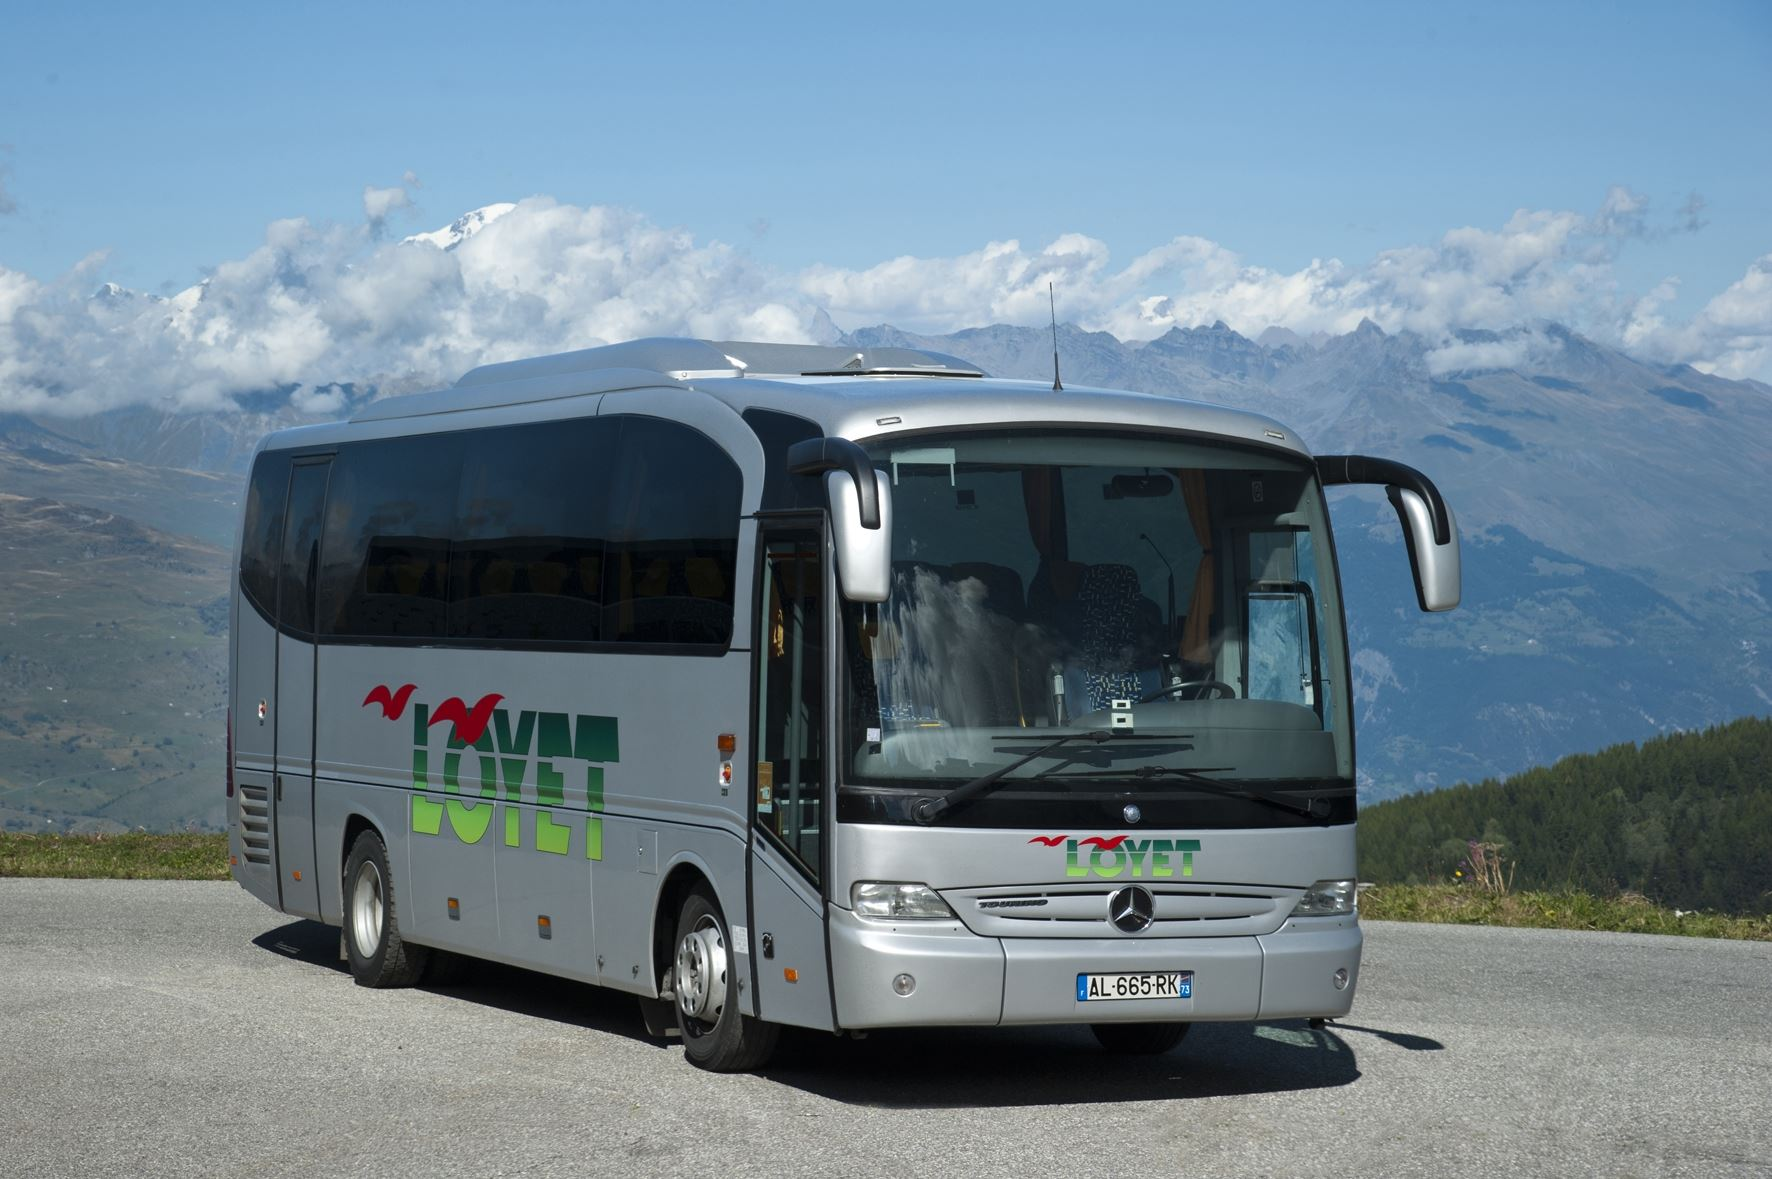 SUNDAY BUS TRANSFER FROM GENEVA AIRPORT TO VAL THORENS - 58€ PER TICKET